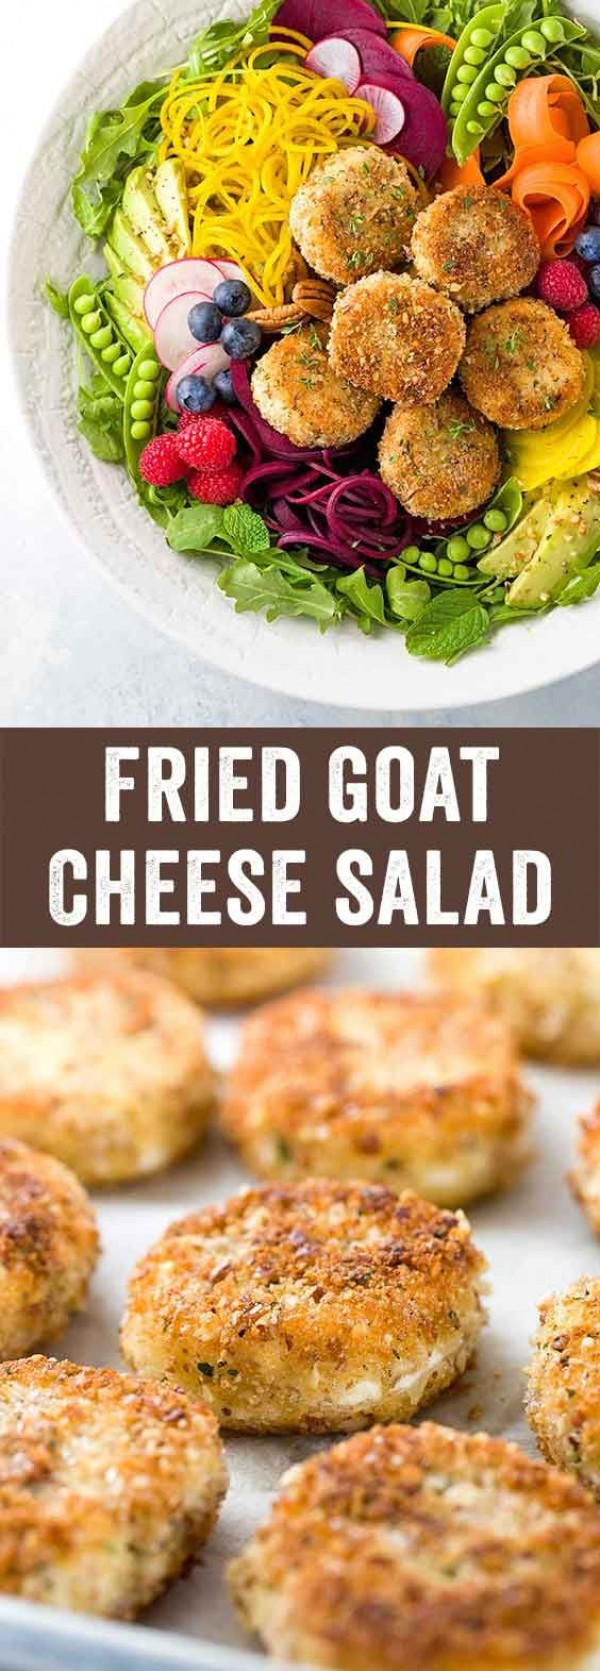 Get the recipe Fried Goat Cheese Salad @recipes_to_go